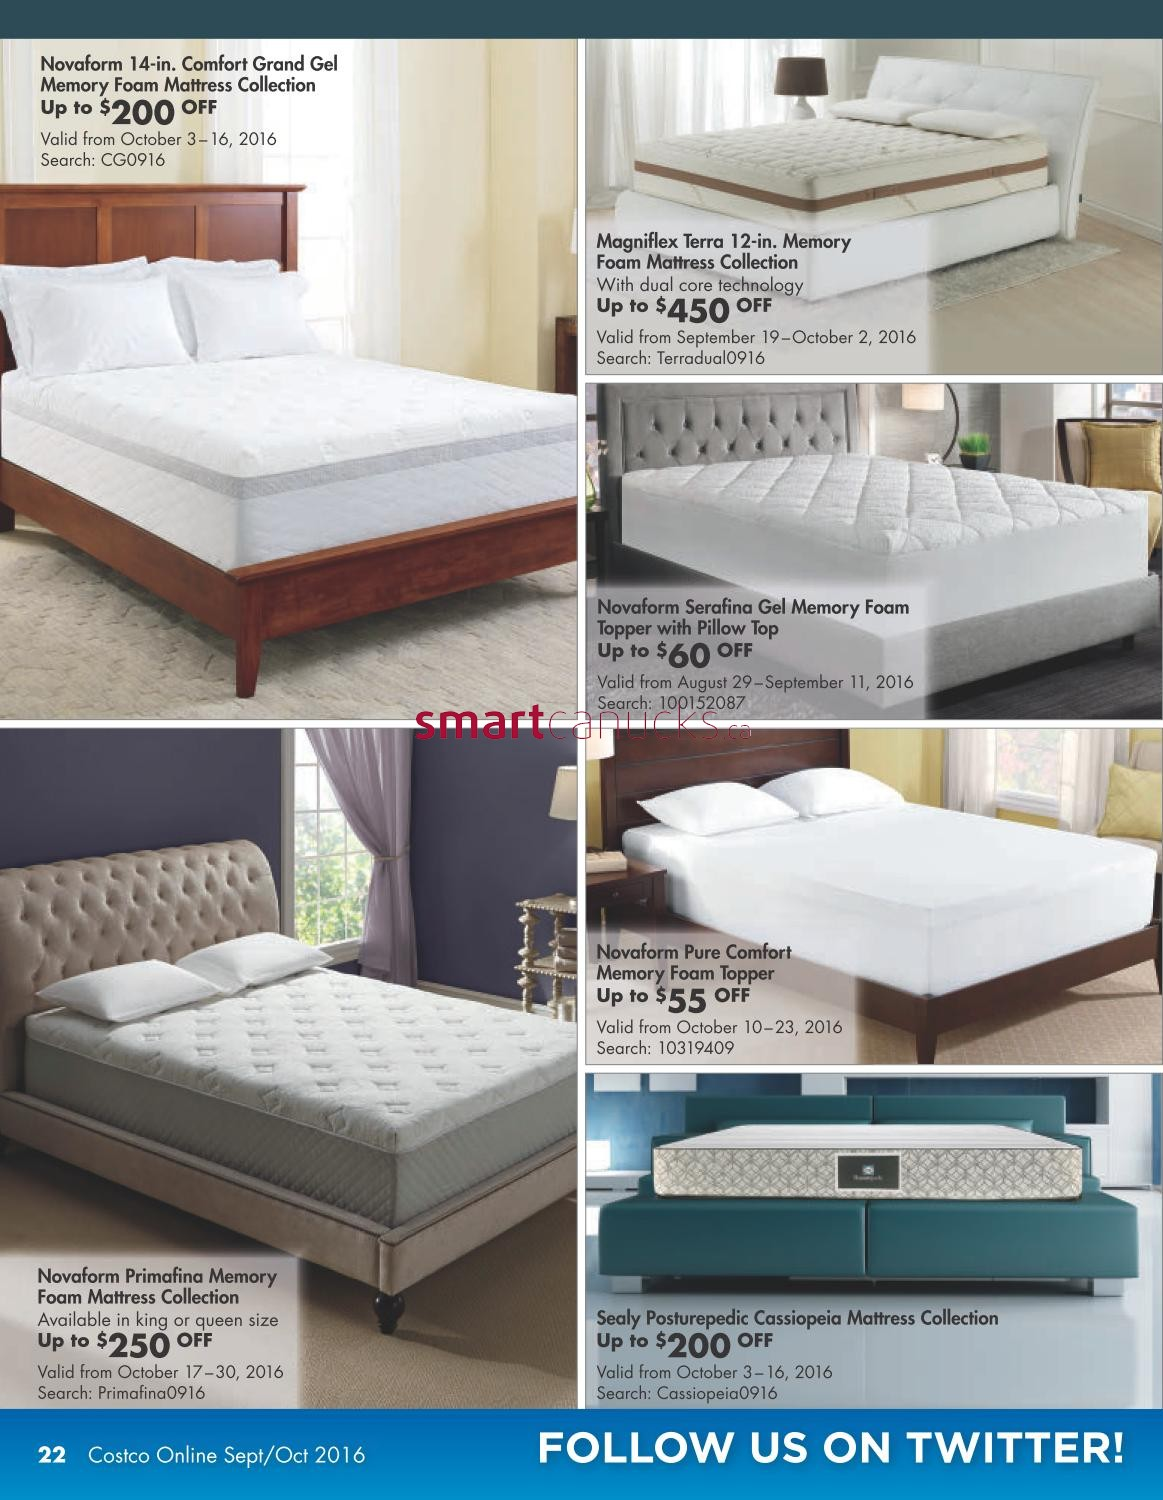 costco online catalogue september 1 to october 31 - Costco Mattress Topper